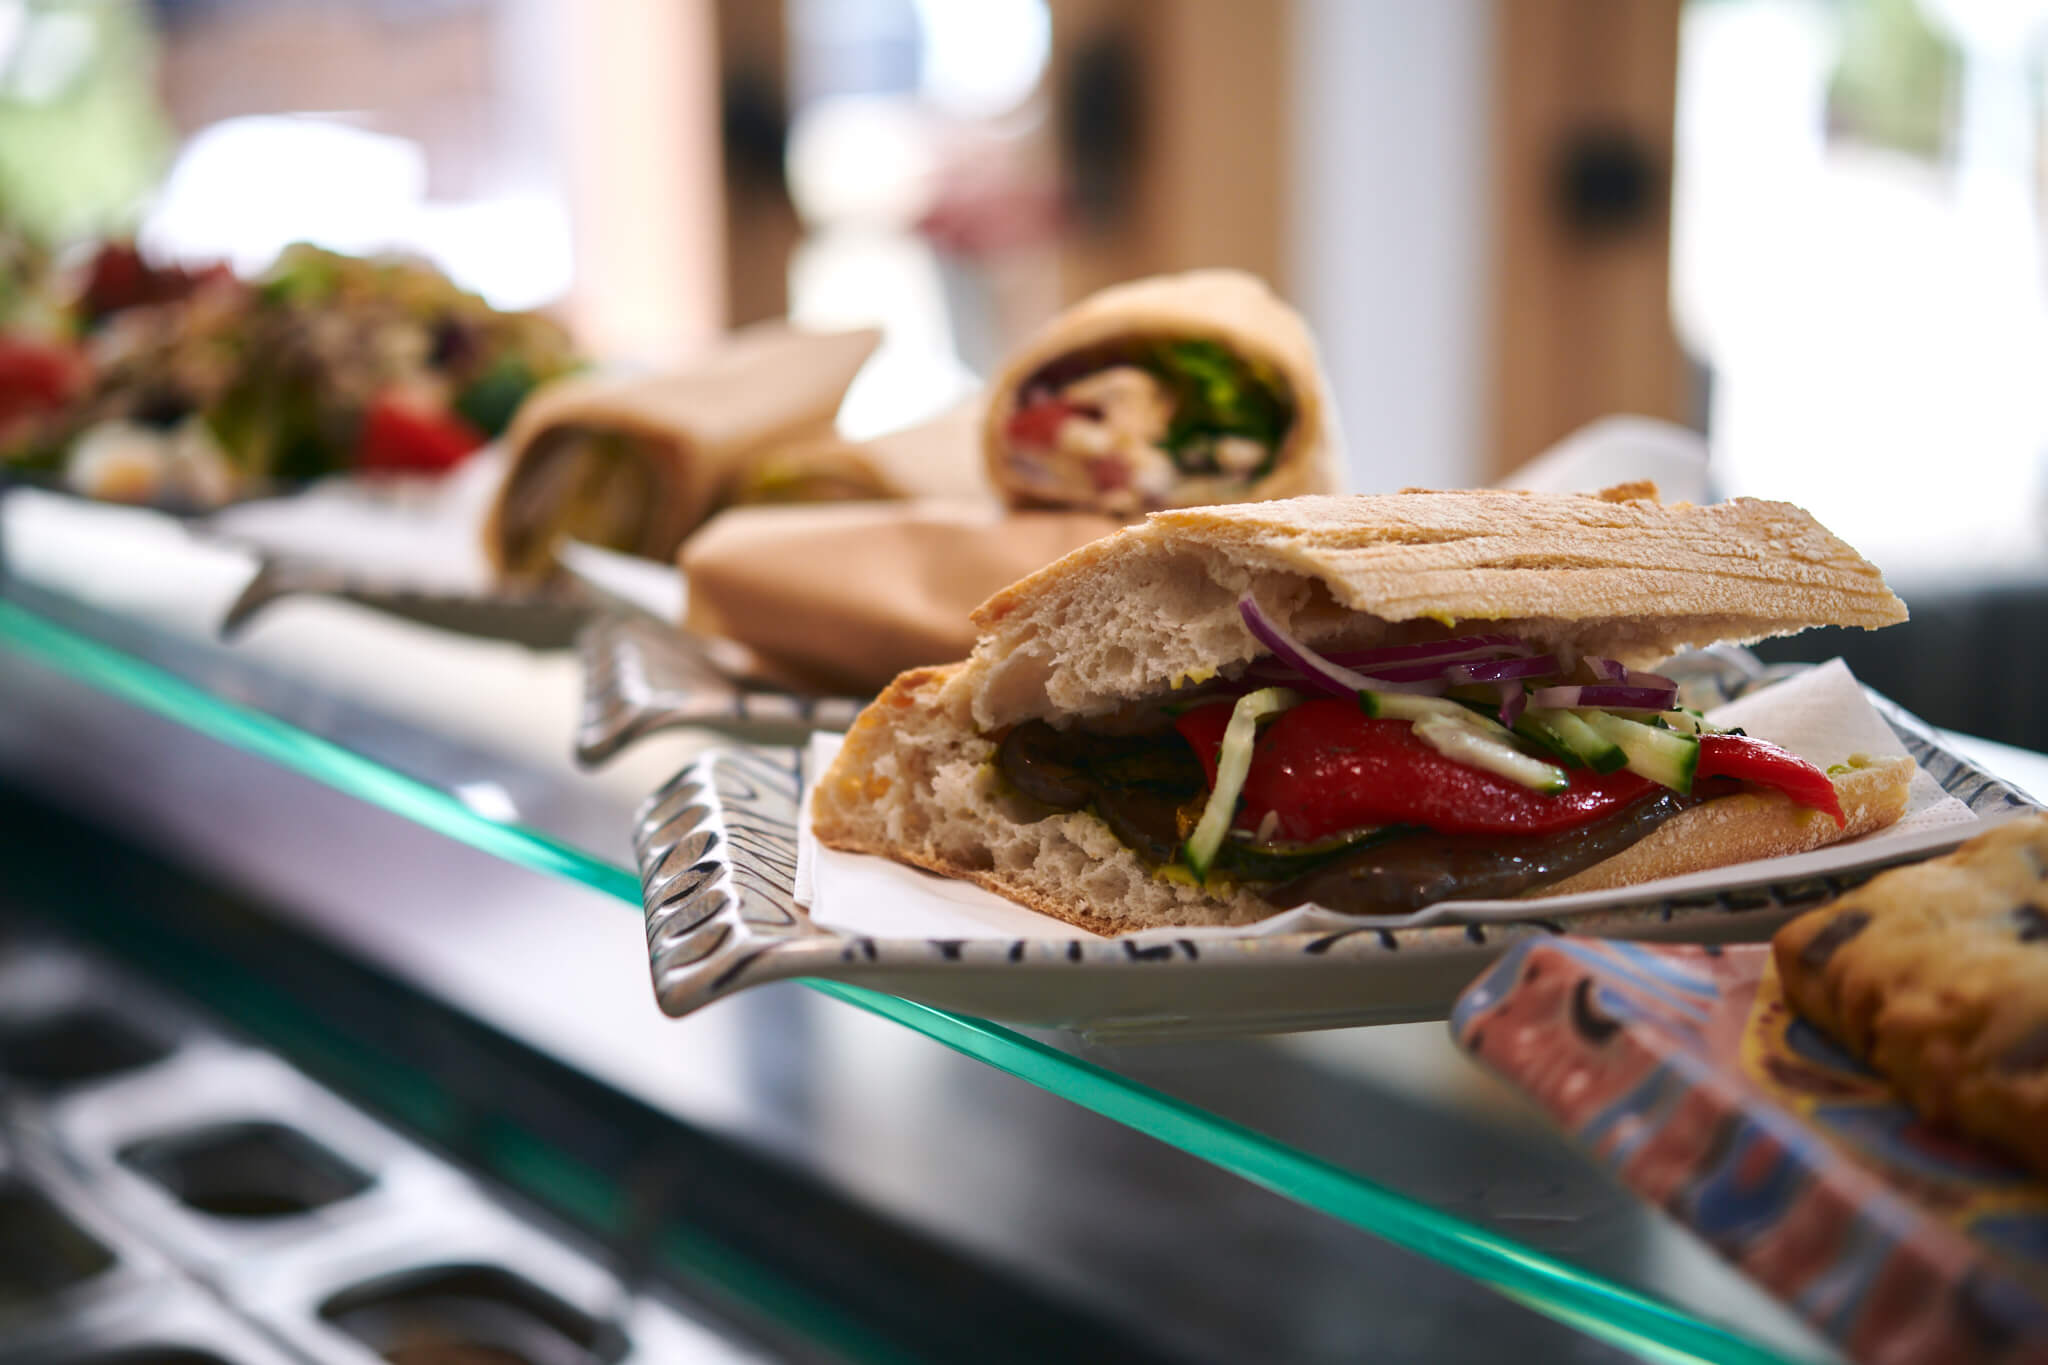 Multiple dishes including; wraps, sandwiches etc all ready to be served